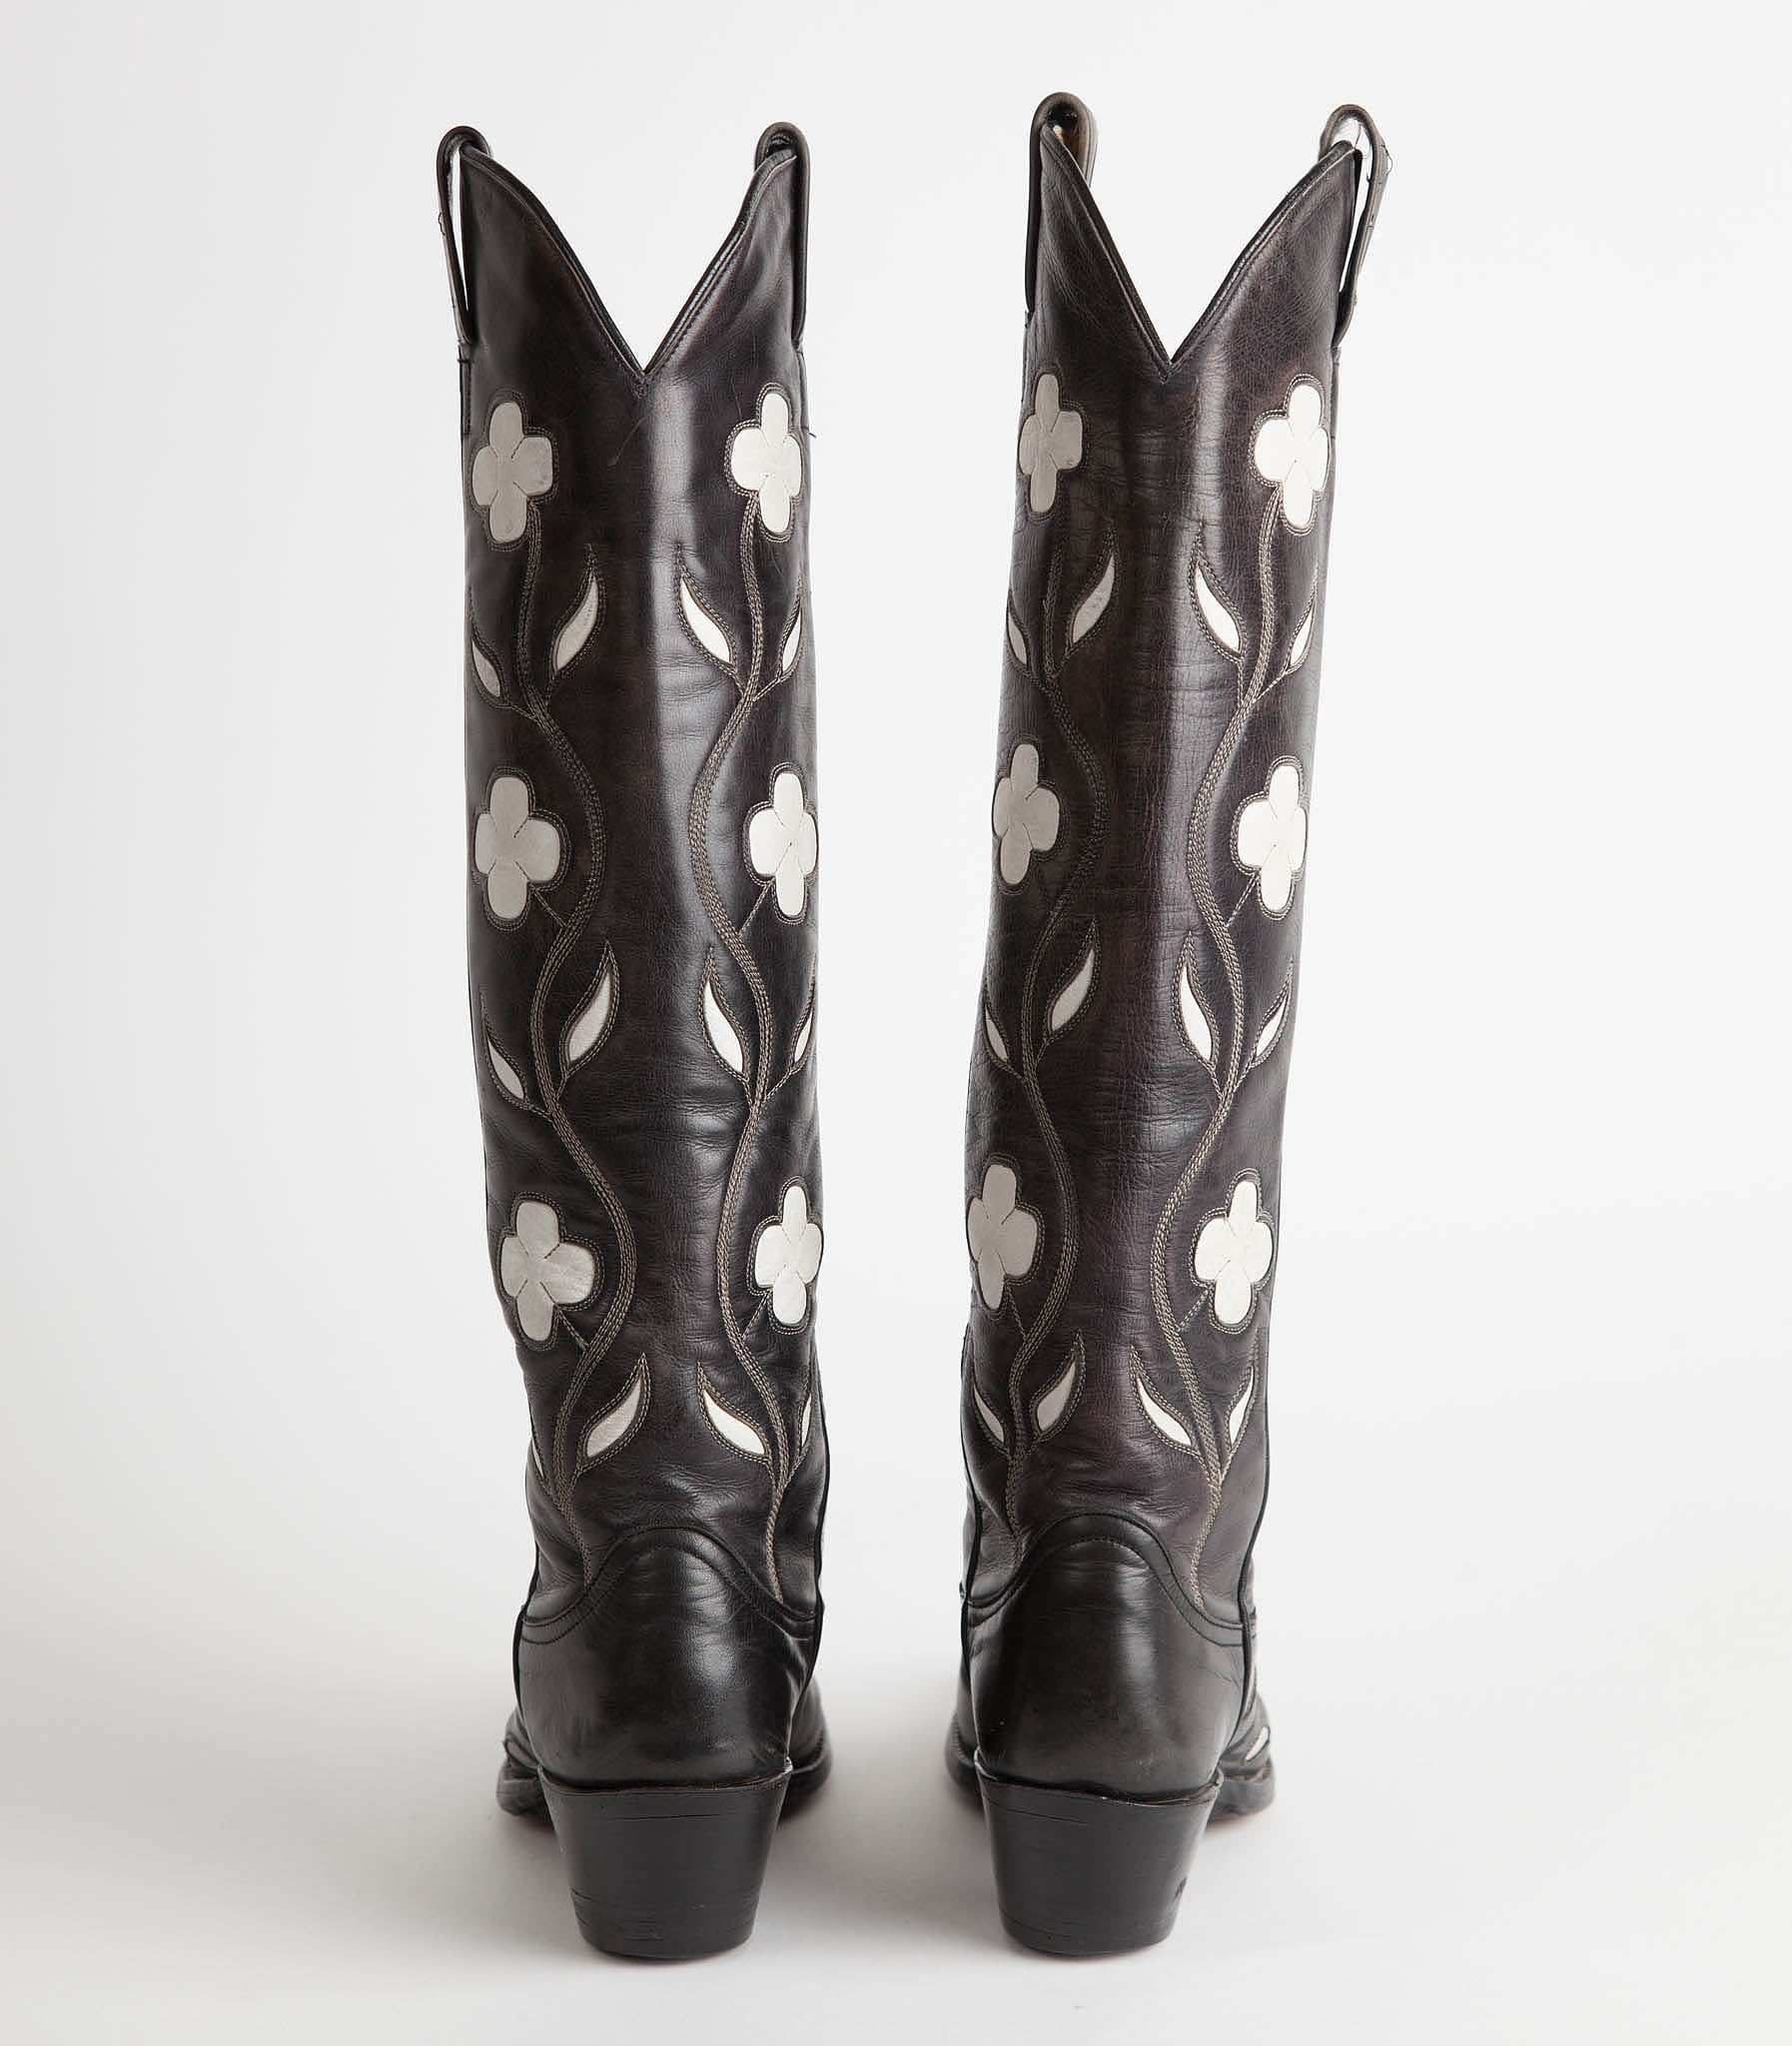 0c372443d15 Vintage Cutter Bill Tall Black & White Cowboy Boots – Townsend ...